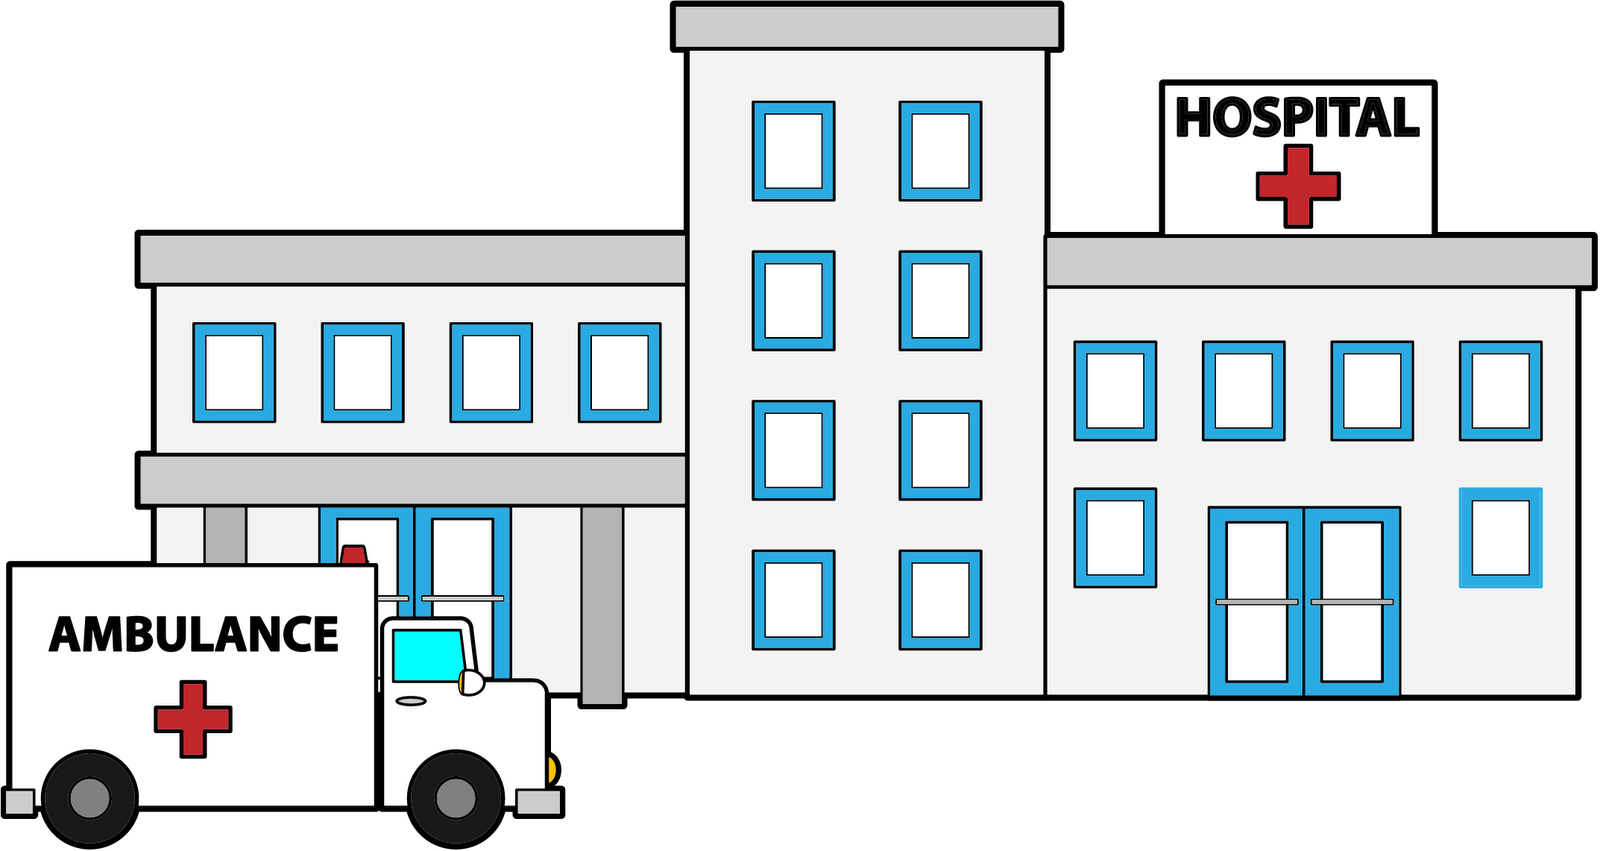 Hospital building clipart vector royalty free Hospital building clip art clipart images gallery for free ... vector royalty free